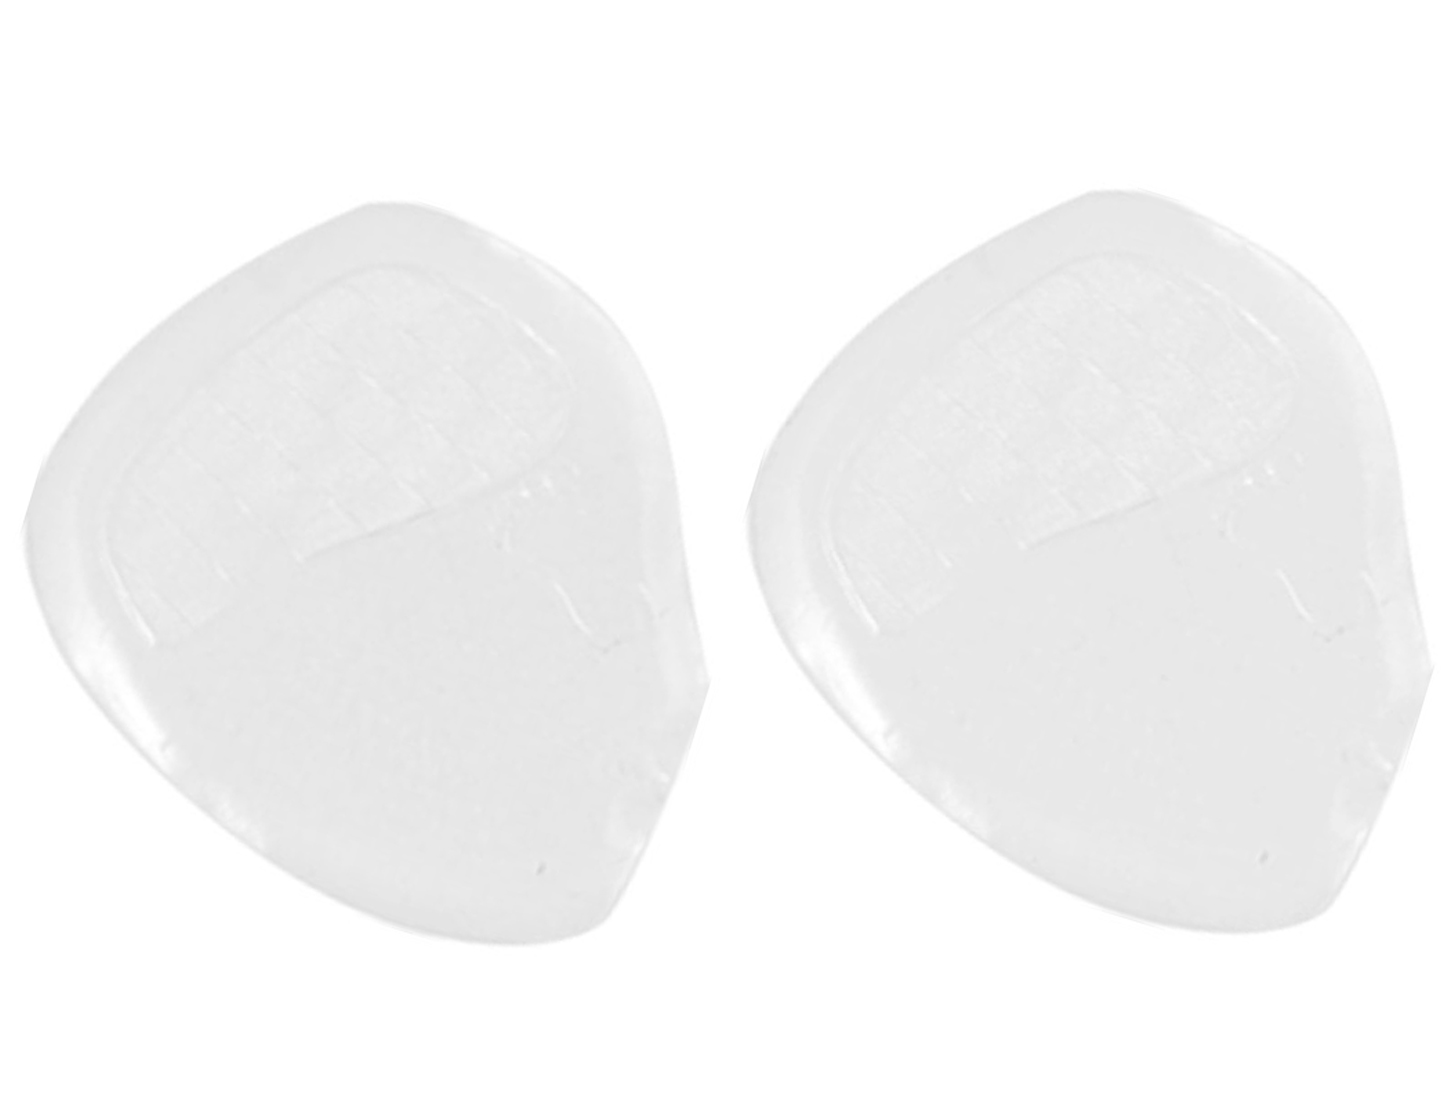 1 Pair Transparent Silicone Gel Ball Cushion Shoes Inserts Insoles Pads